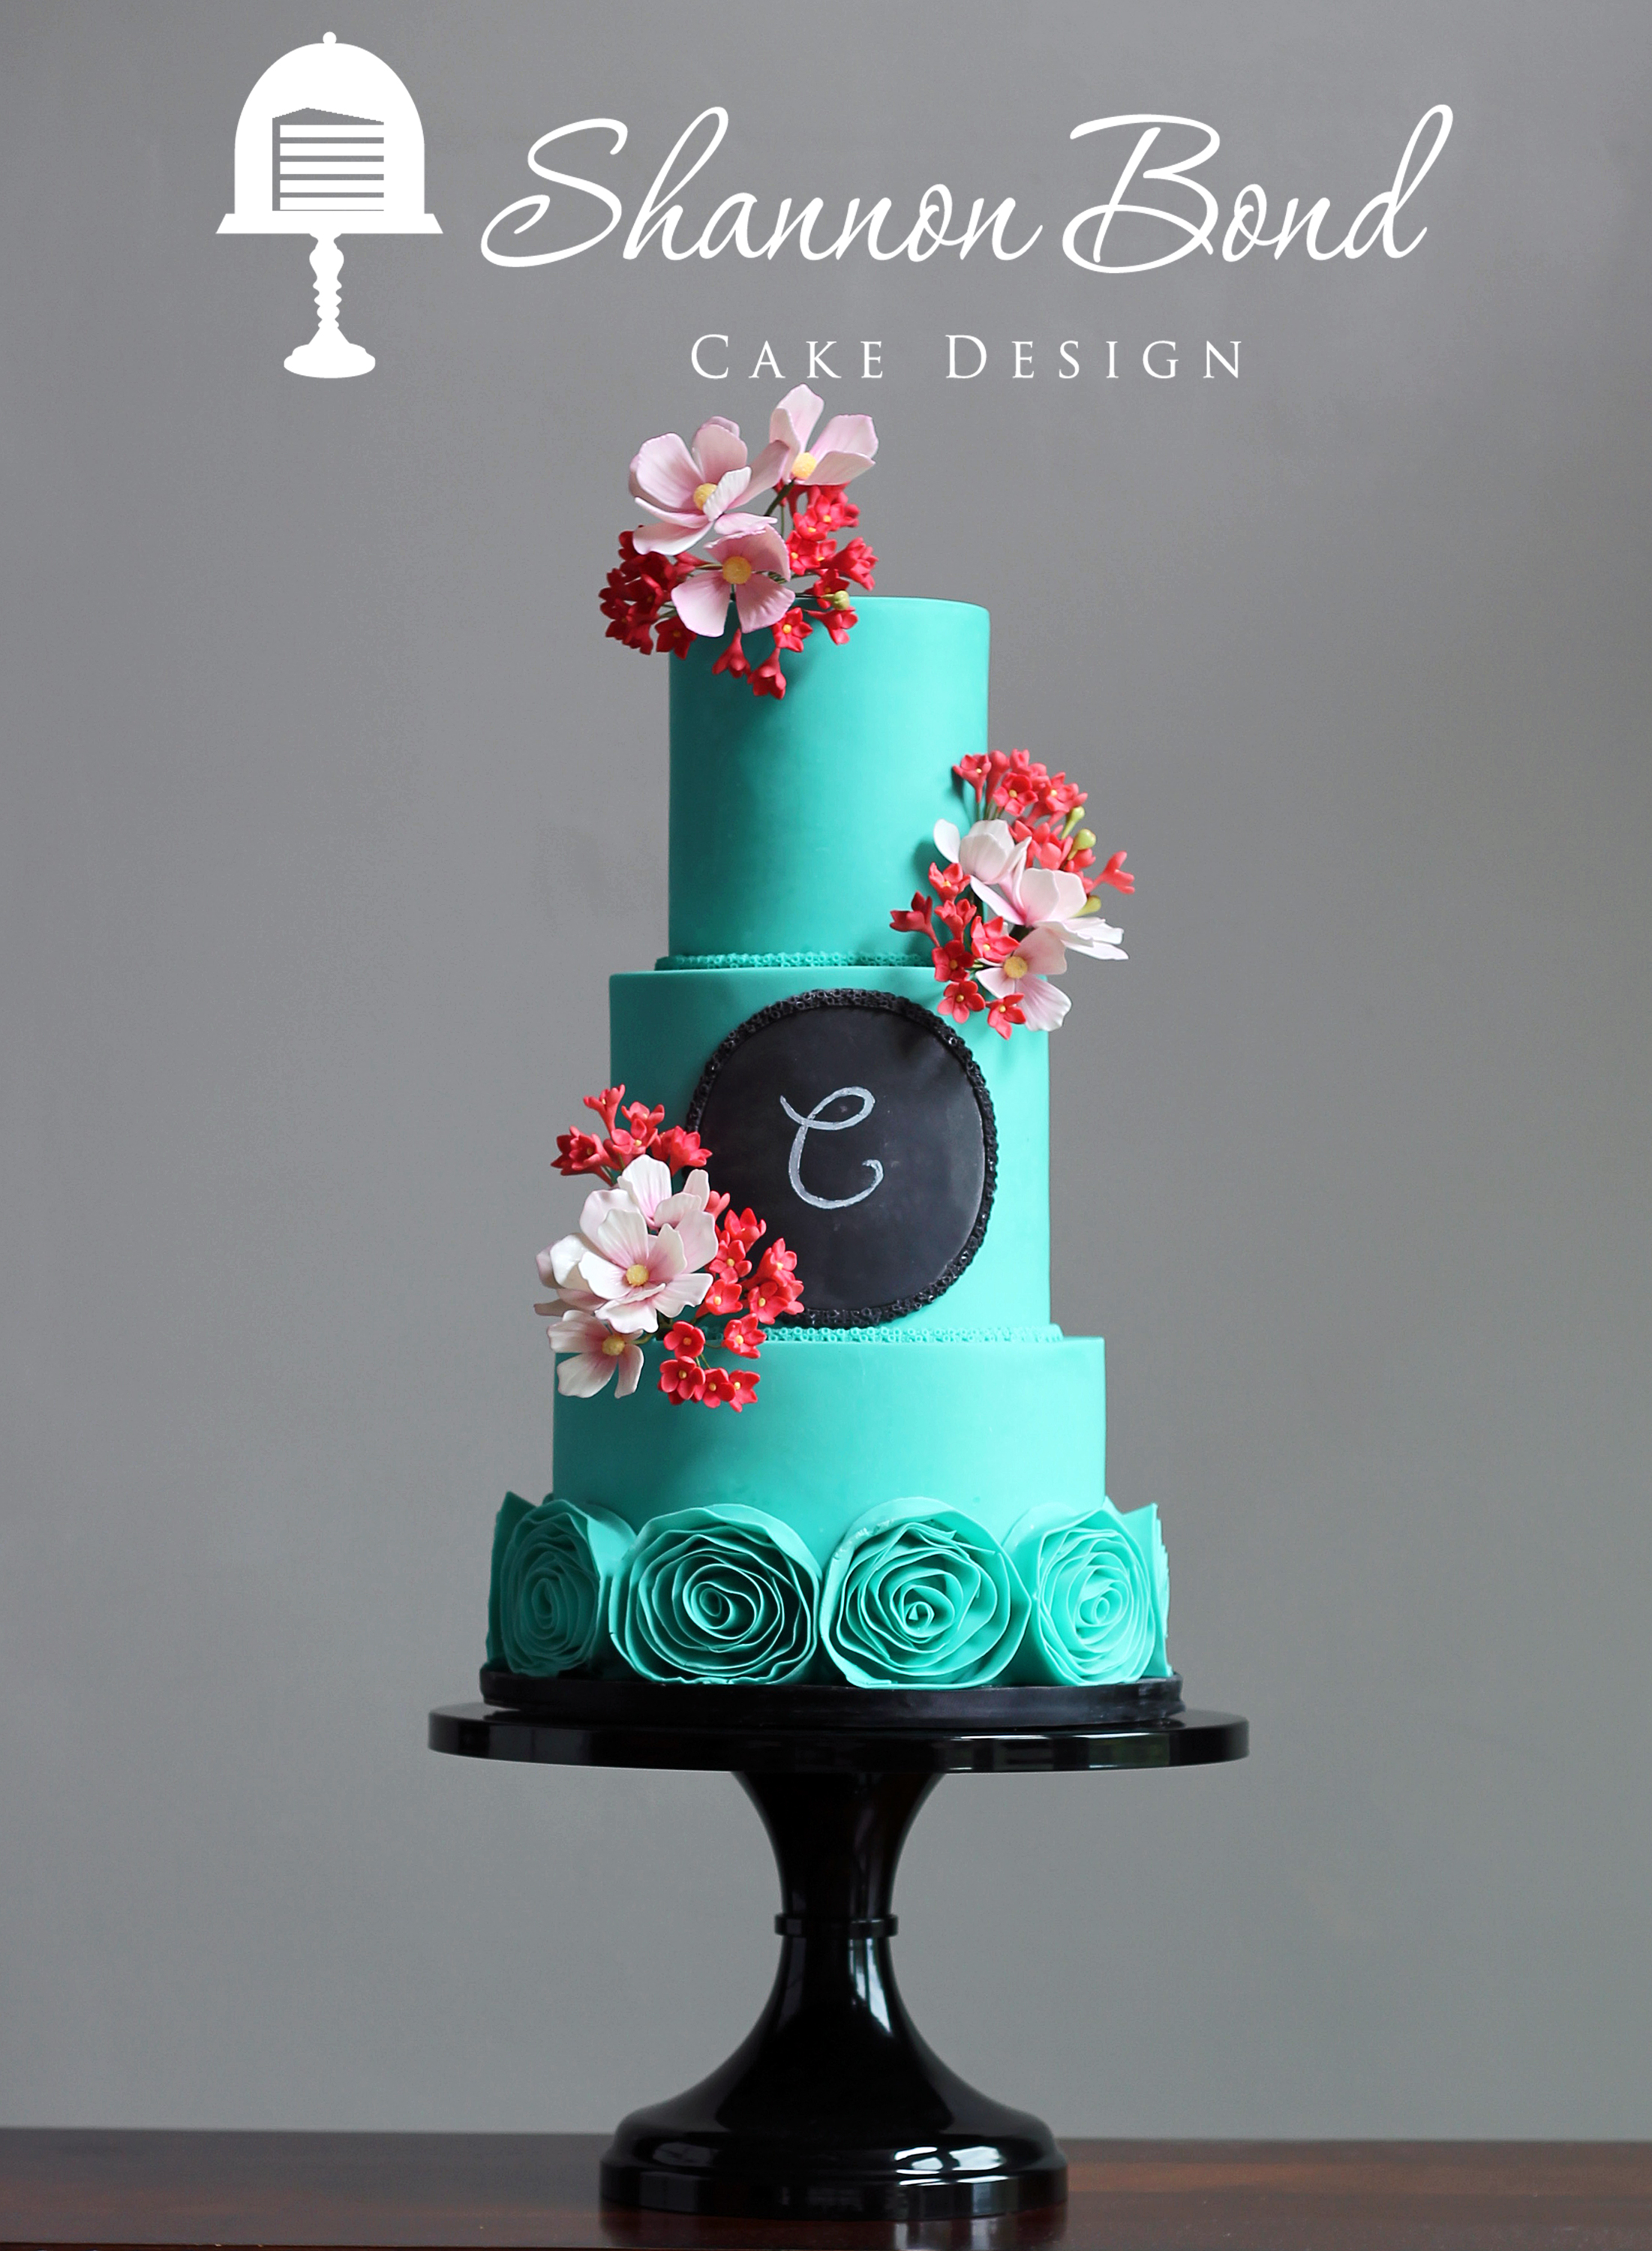 Turquoise wedding cake with rosettes and red sugar flowers